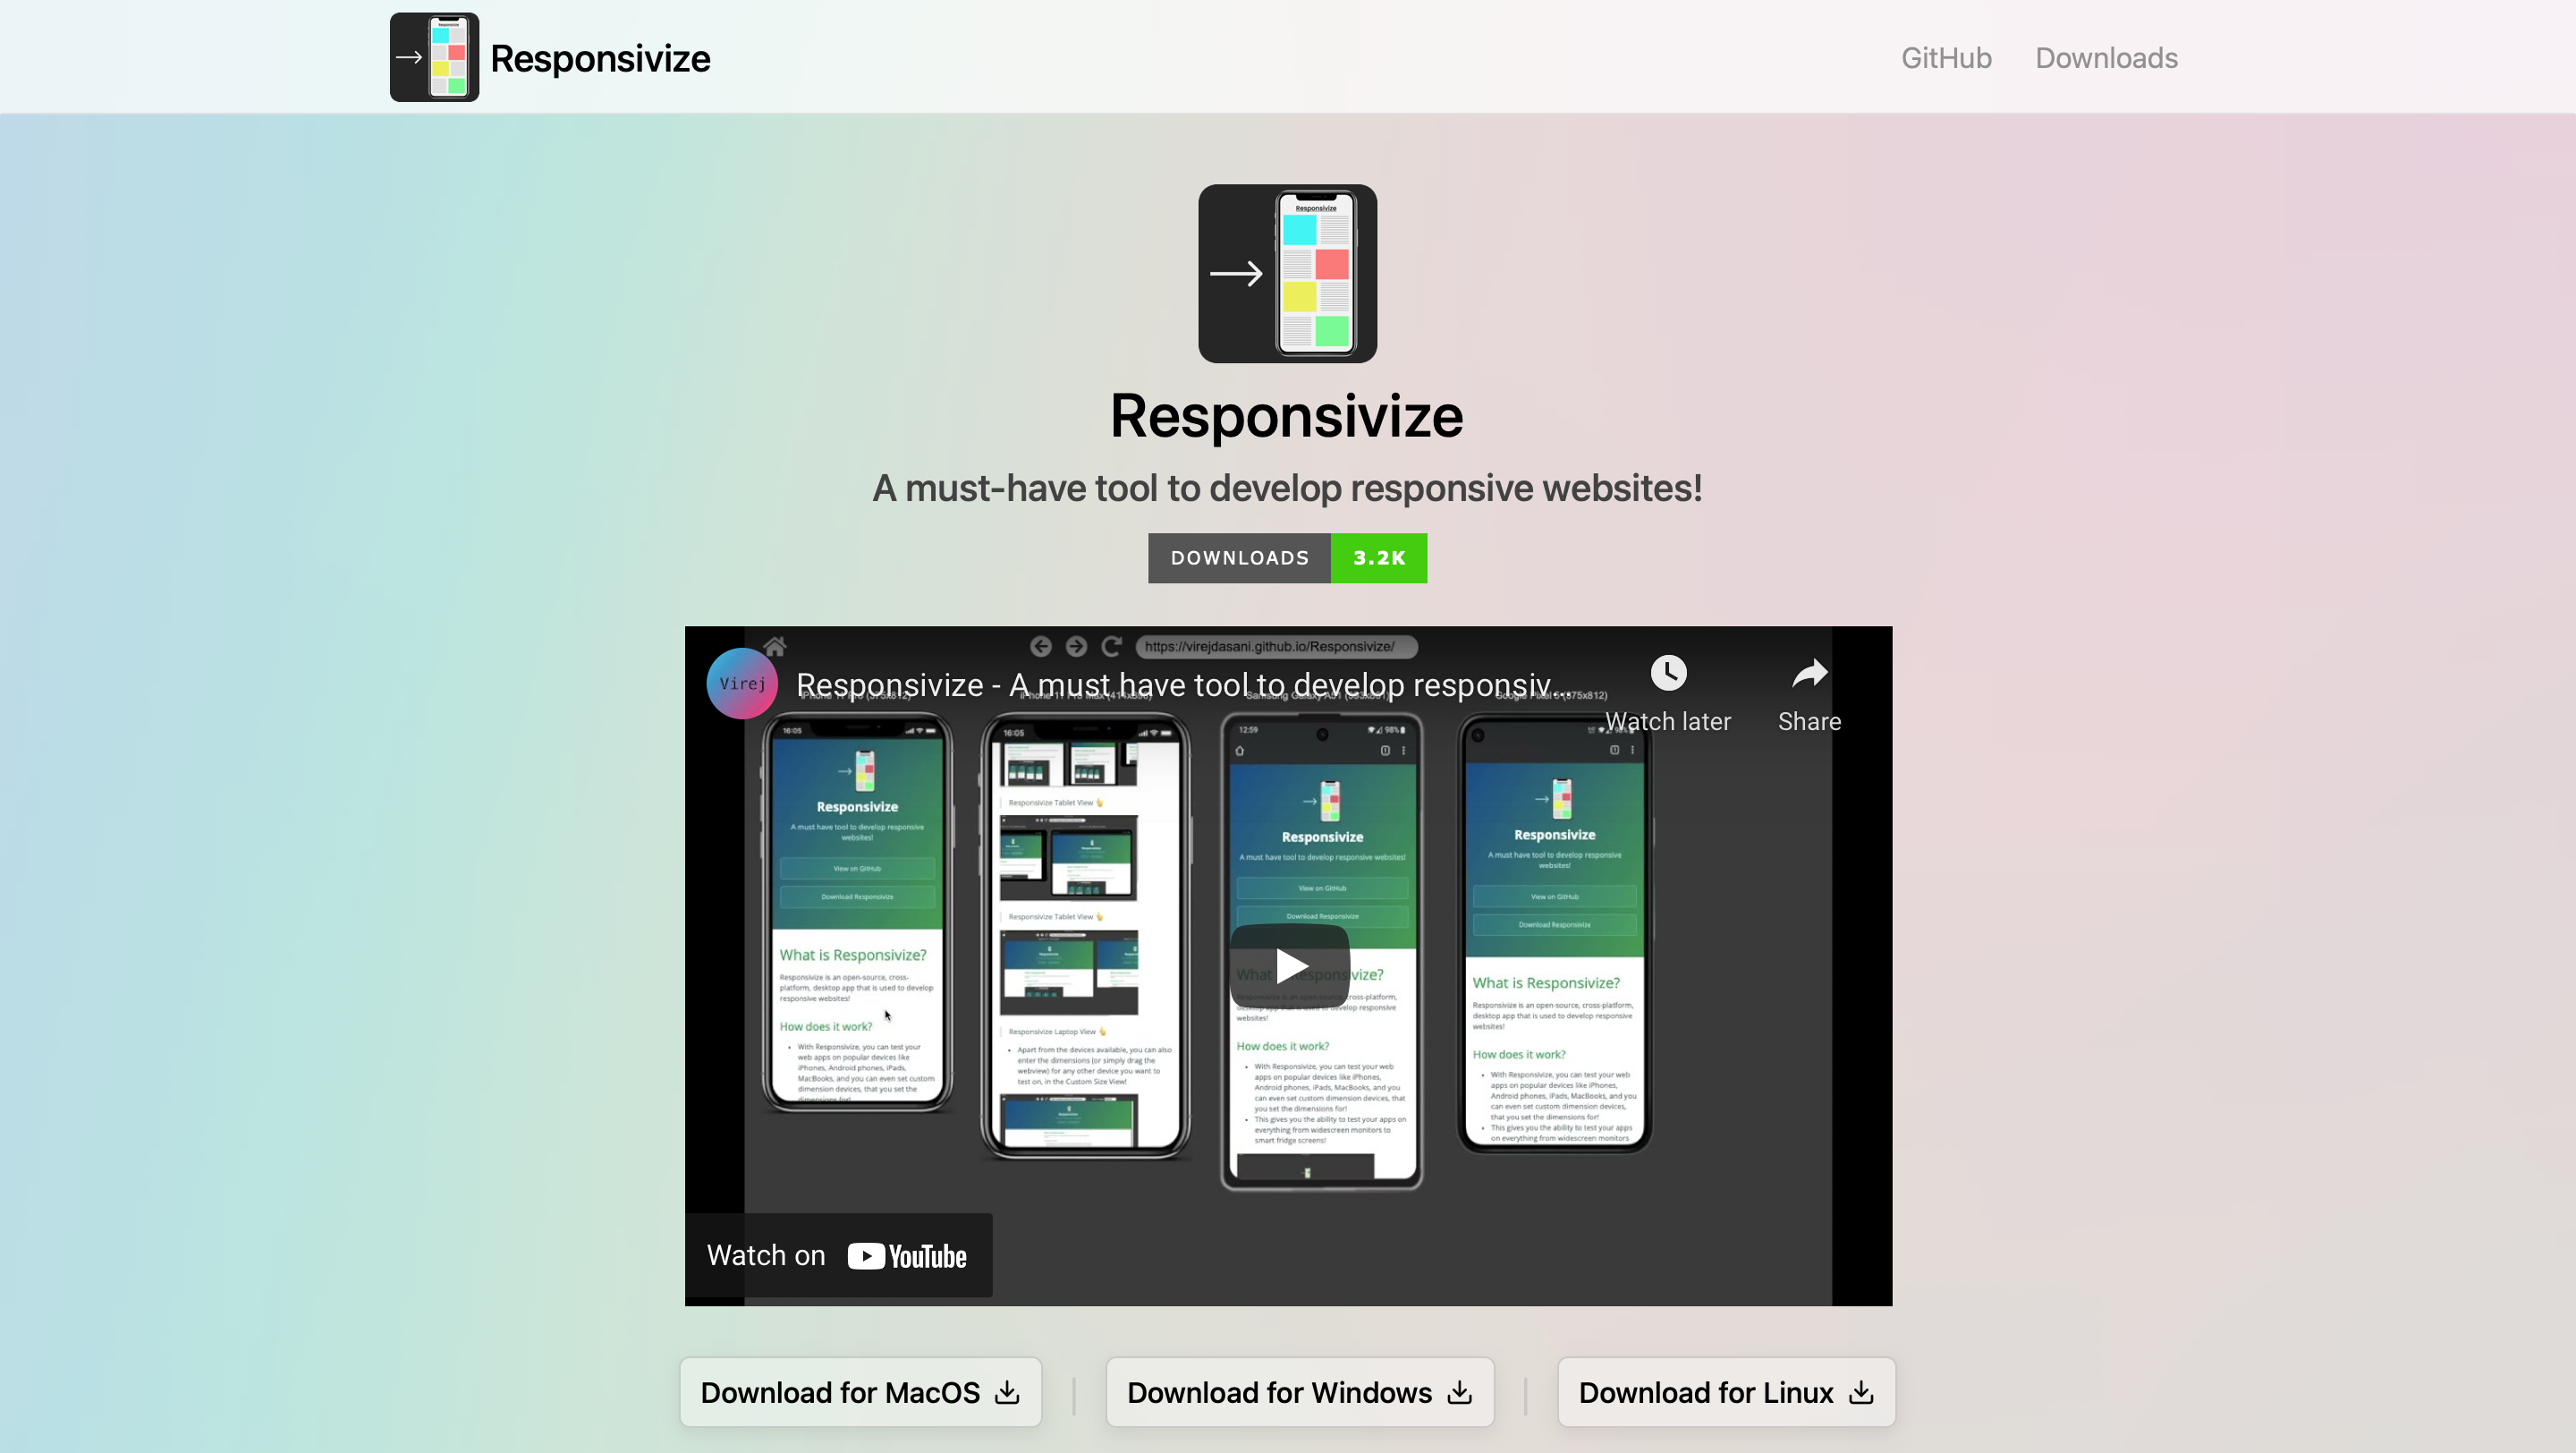 Testing for responsiveness across various devices